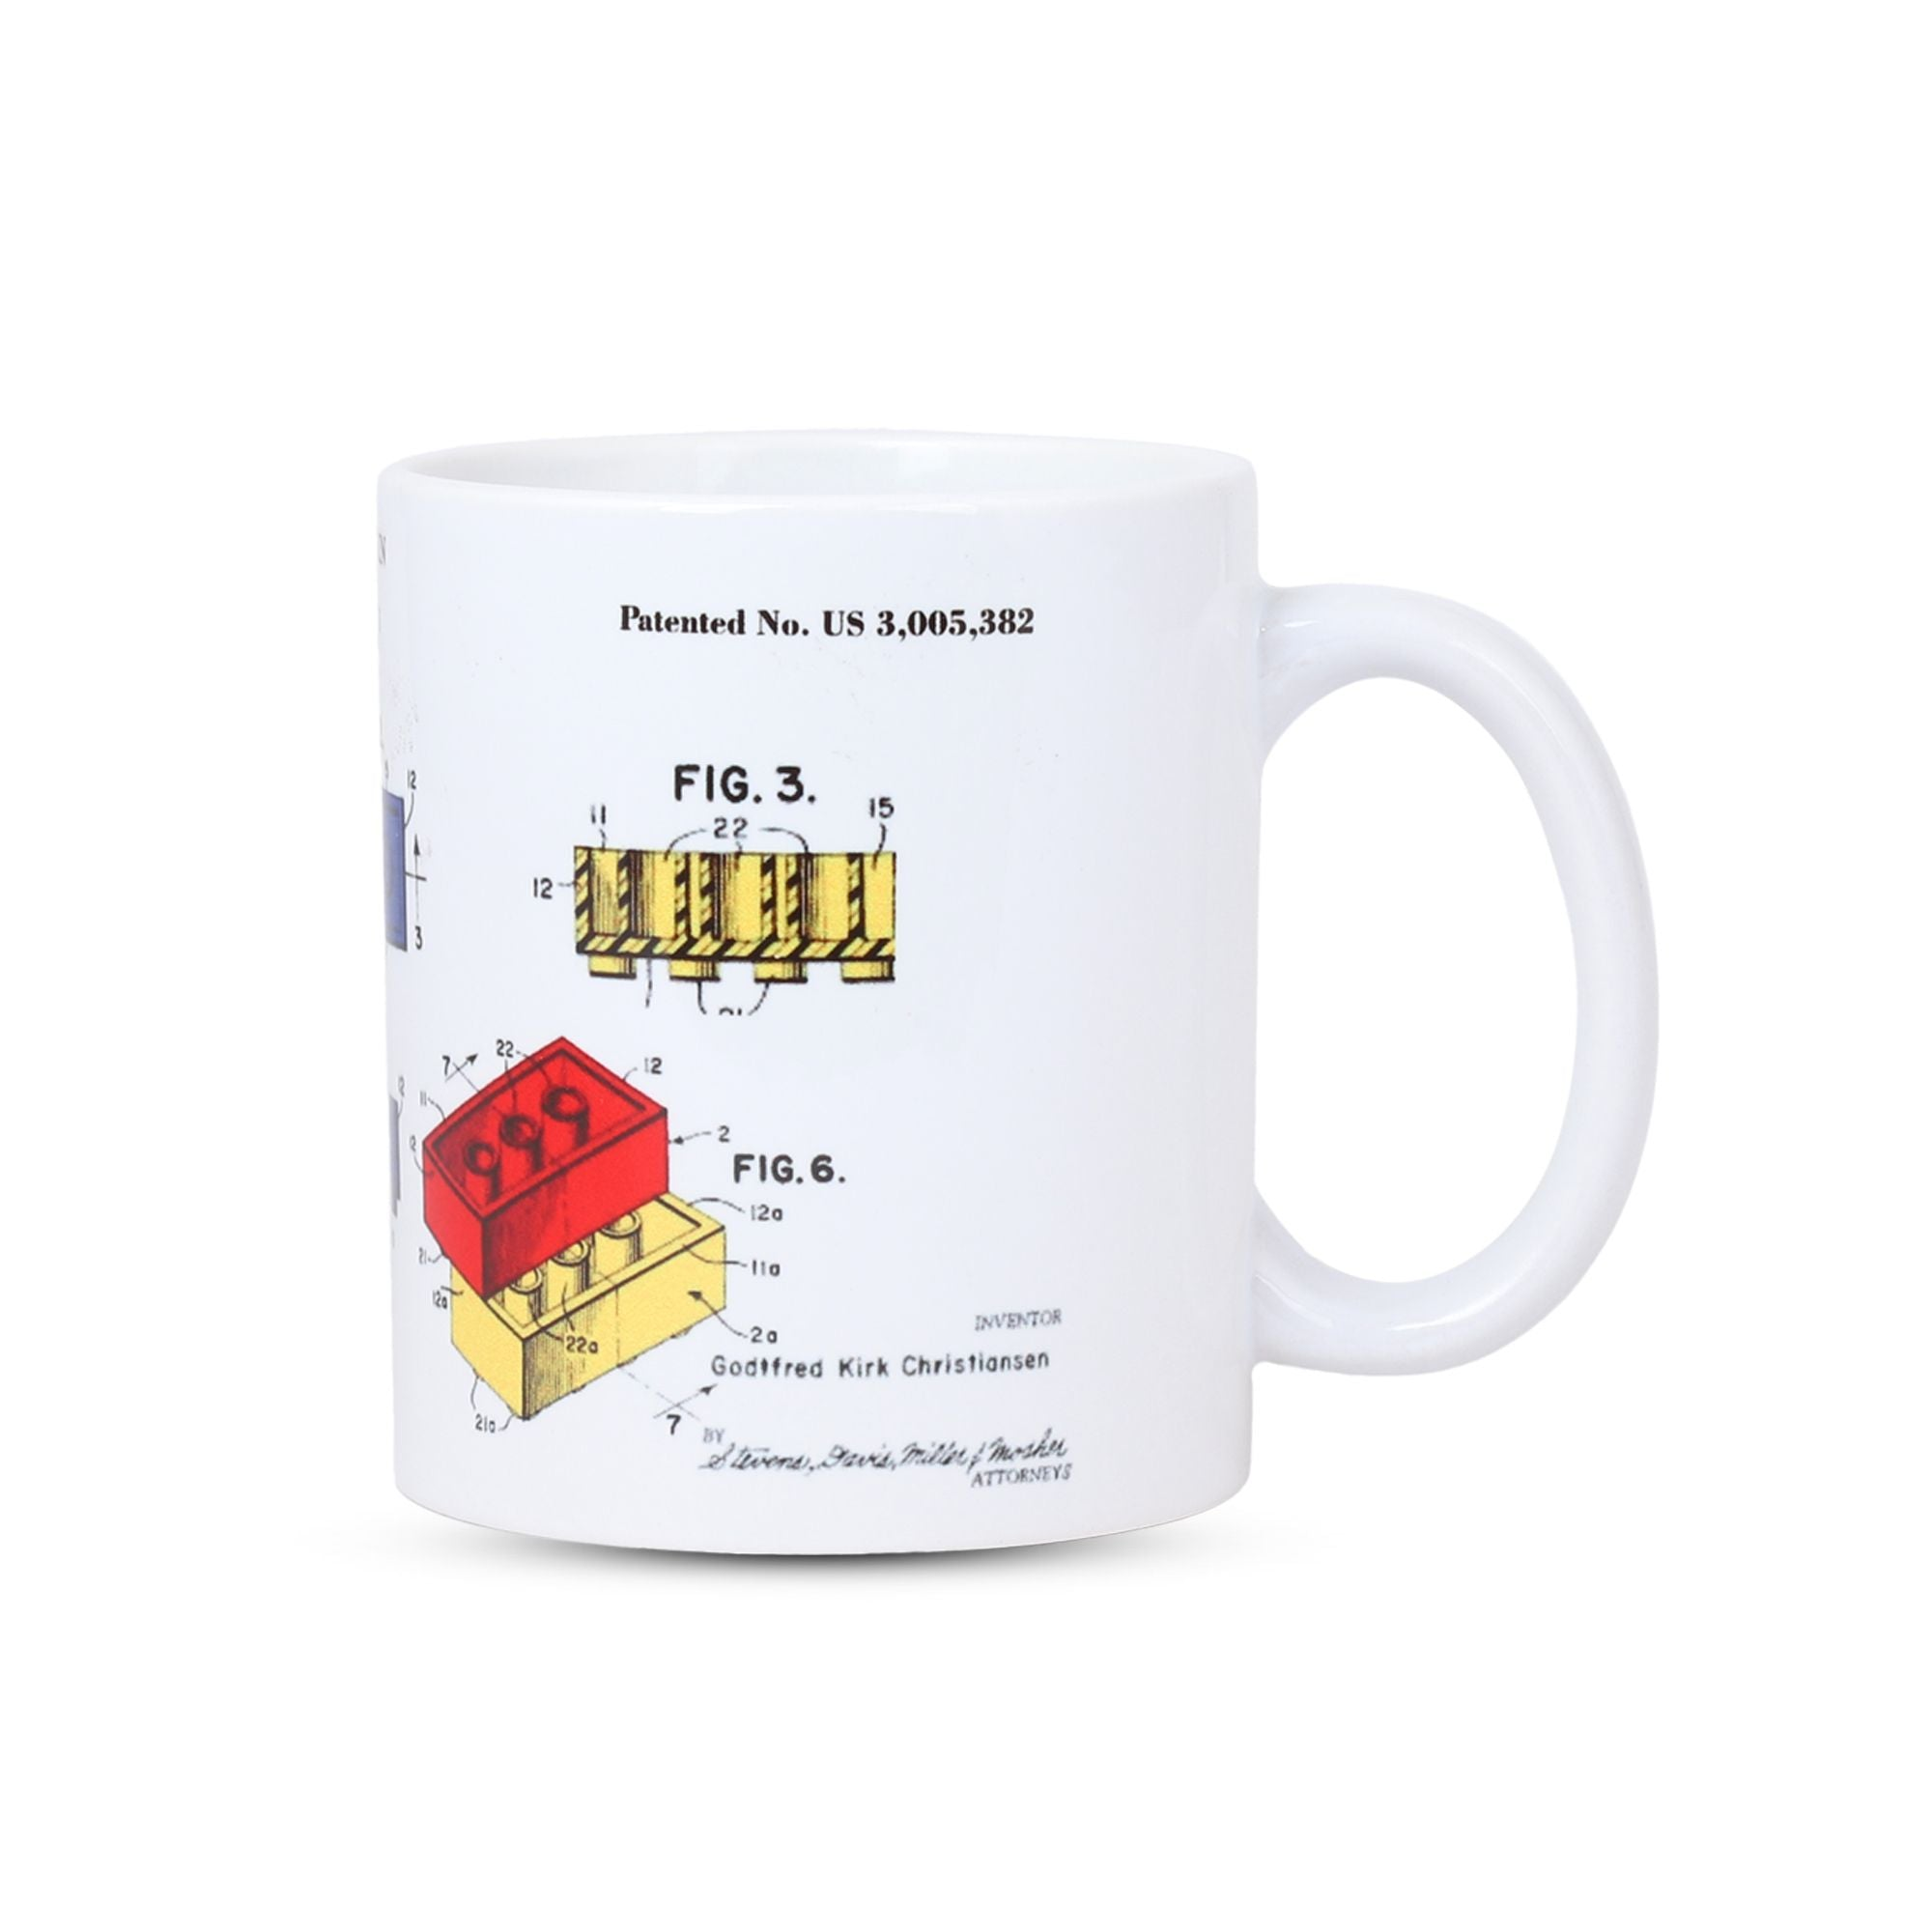 Side View of Lego U.S.Patent Reworked Mug, Patent Mug, I.P.Lawyers